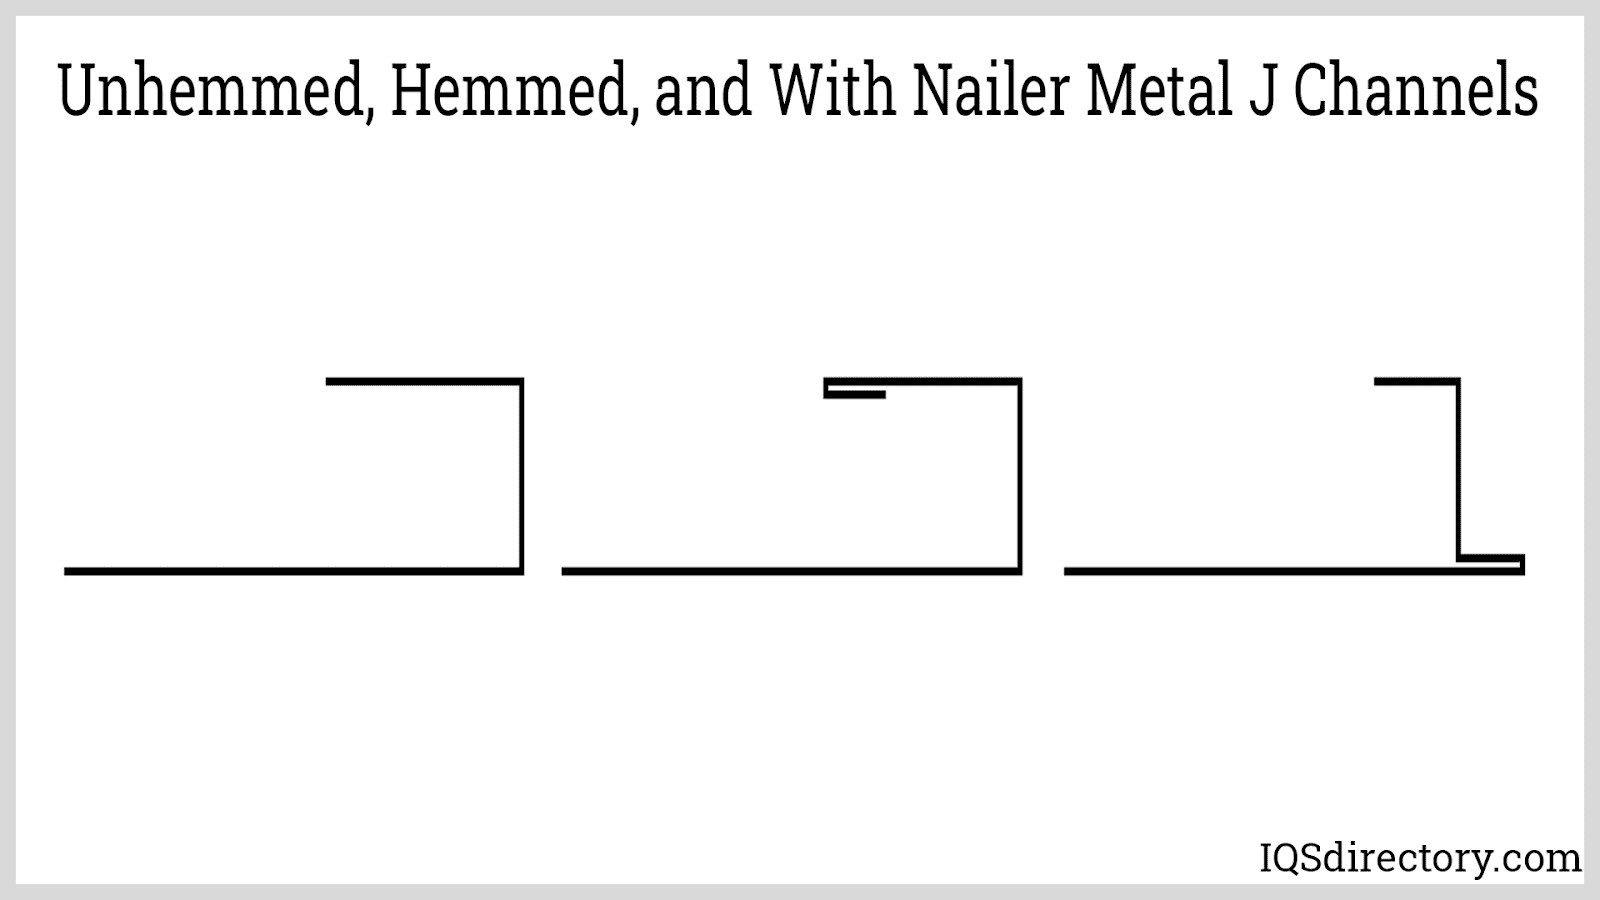 Unhemmed, Hemmed, and with Nailer Metal J Channels